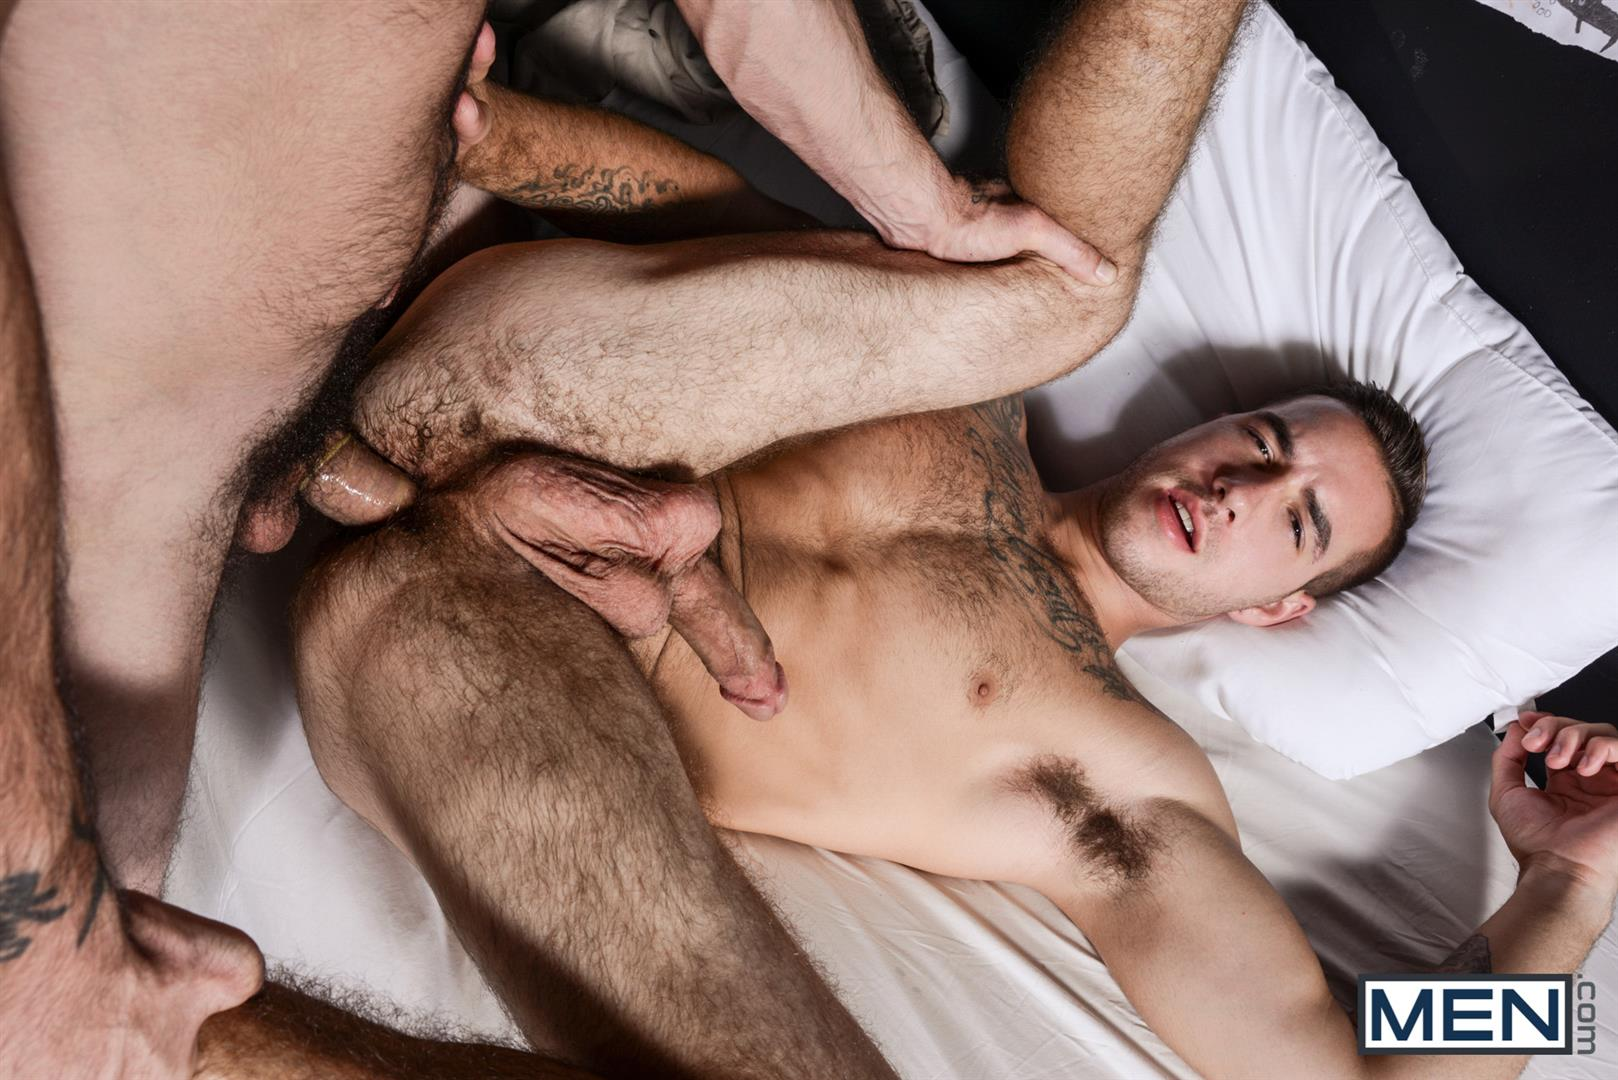 Men-Tony-Paradise-and-Dimitri-Kane-Straight-Men-Having-Sex-in-Prison-Amateur-Gay-Porn-22 Learning How To Survive In Prison By Taking Cock